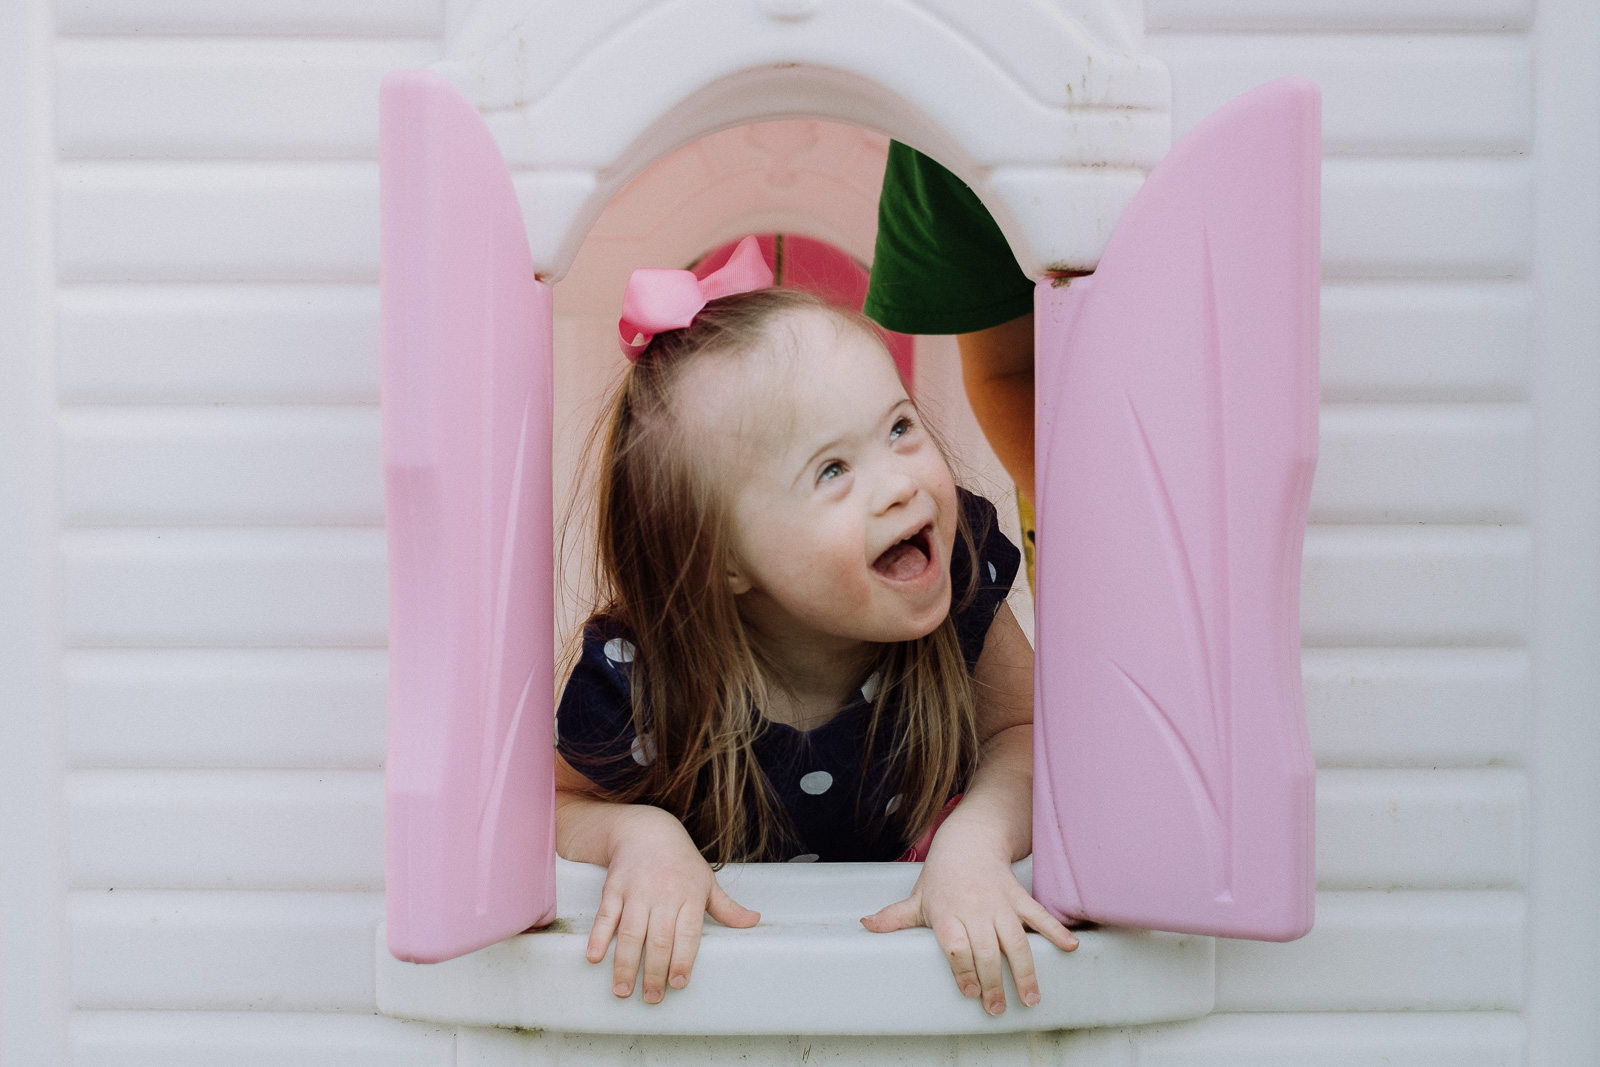 FACT 5 - Many hopeful parents are waiting to adopt a child with DS